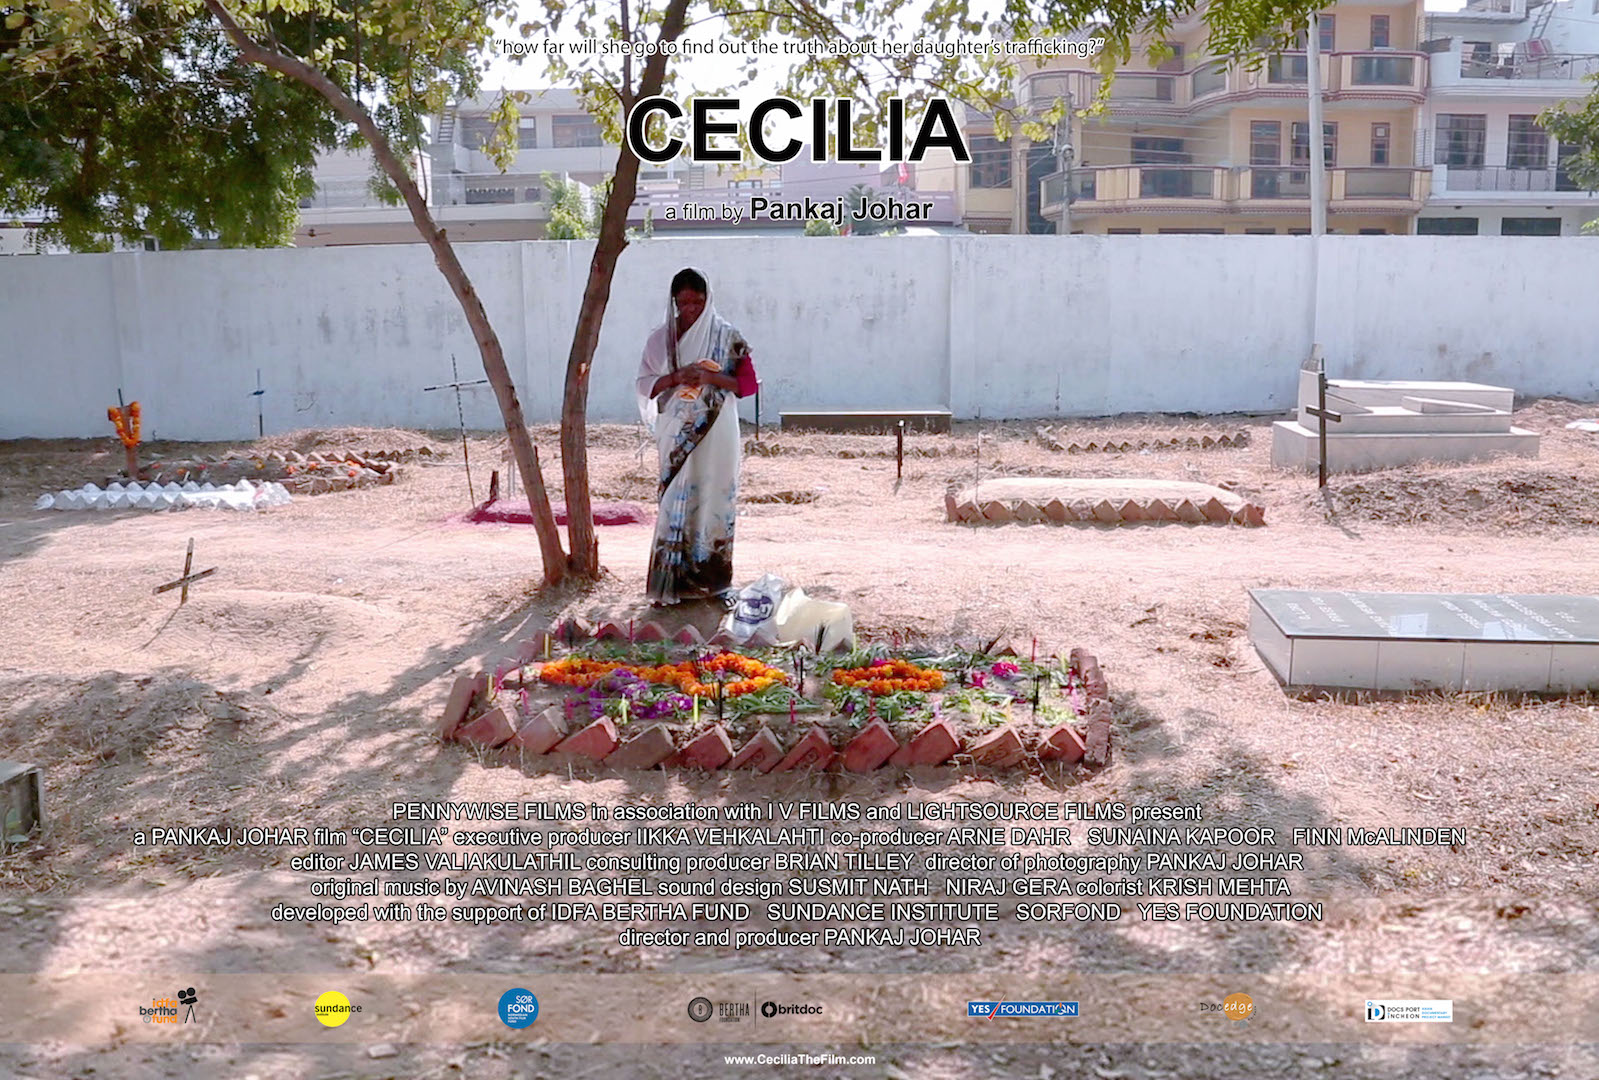 cecilia-documentary-pankaj johar-interview-bollywoodirect